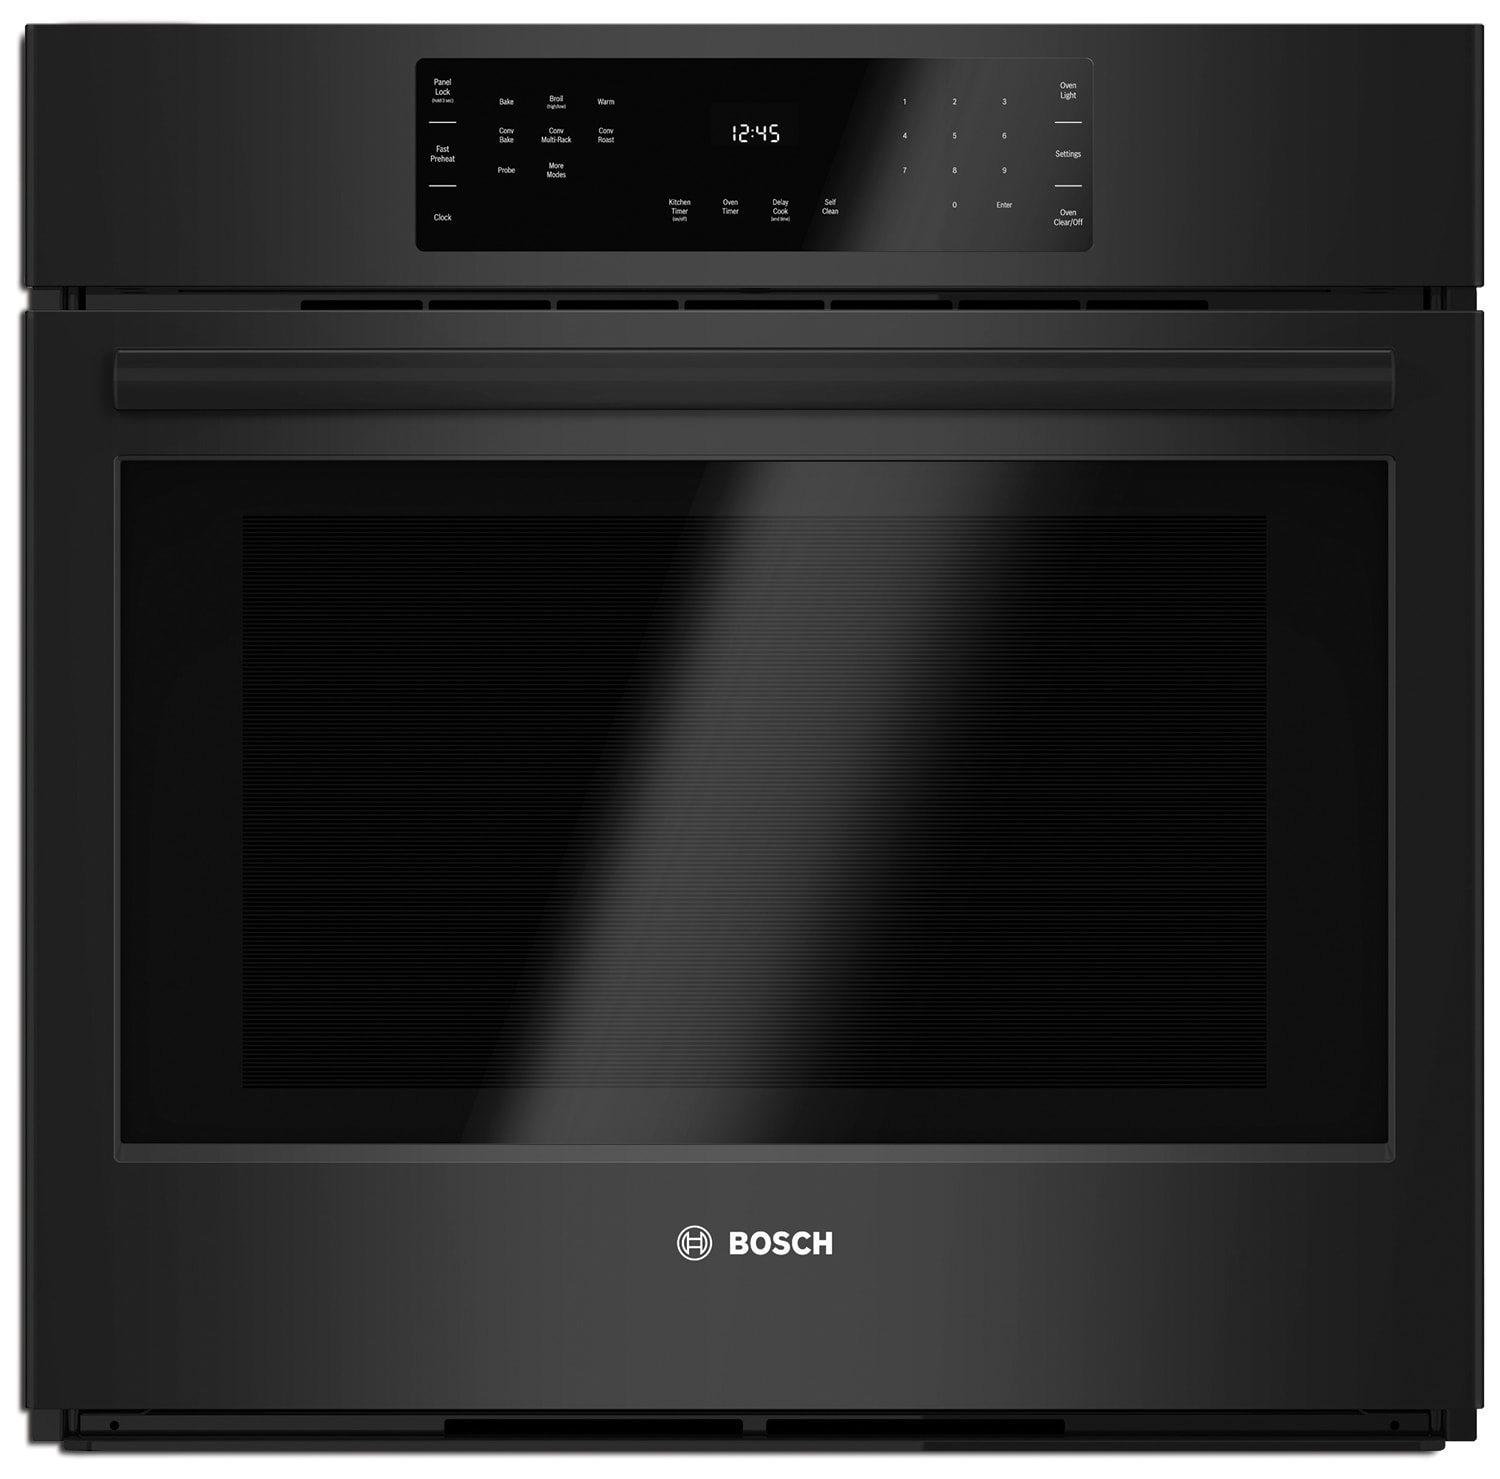 Cooking Products - Bosch 800 Series 4.6 Cu. Ft. Single Wall Oven – HBL8461UC